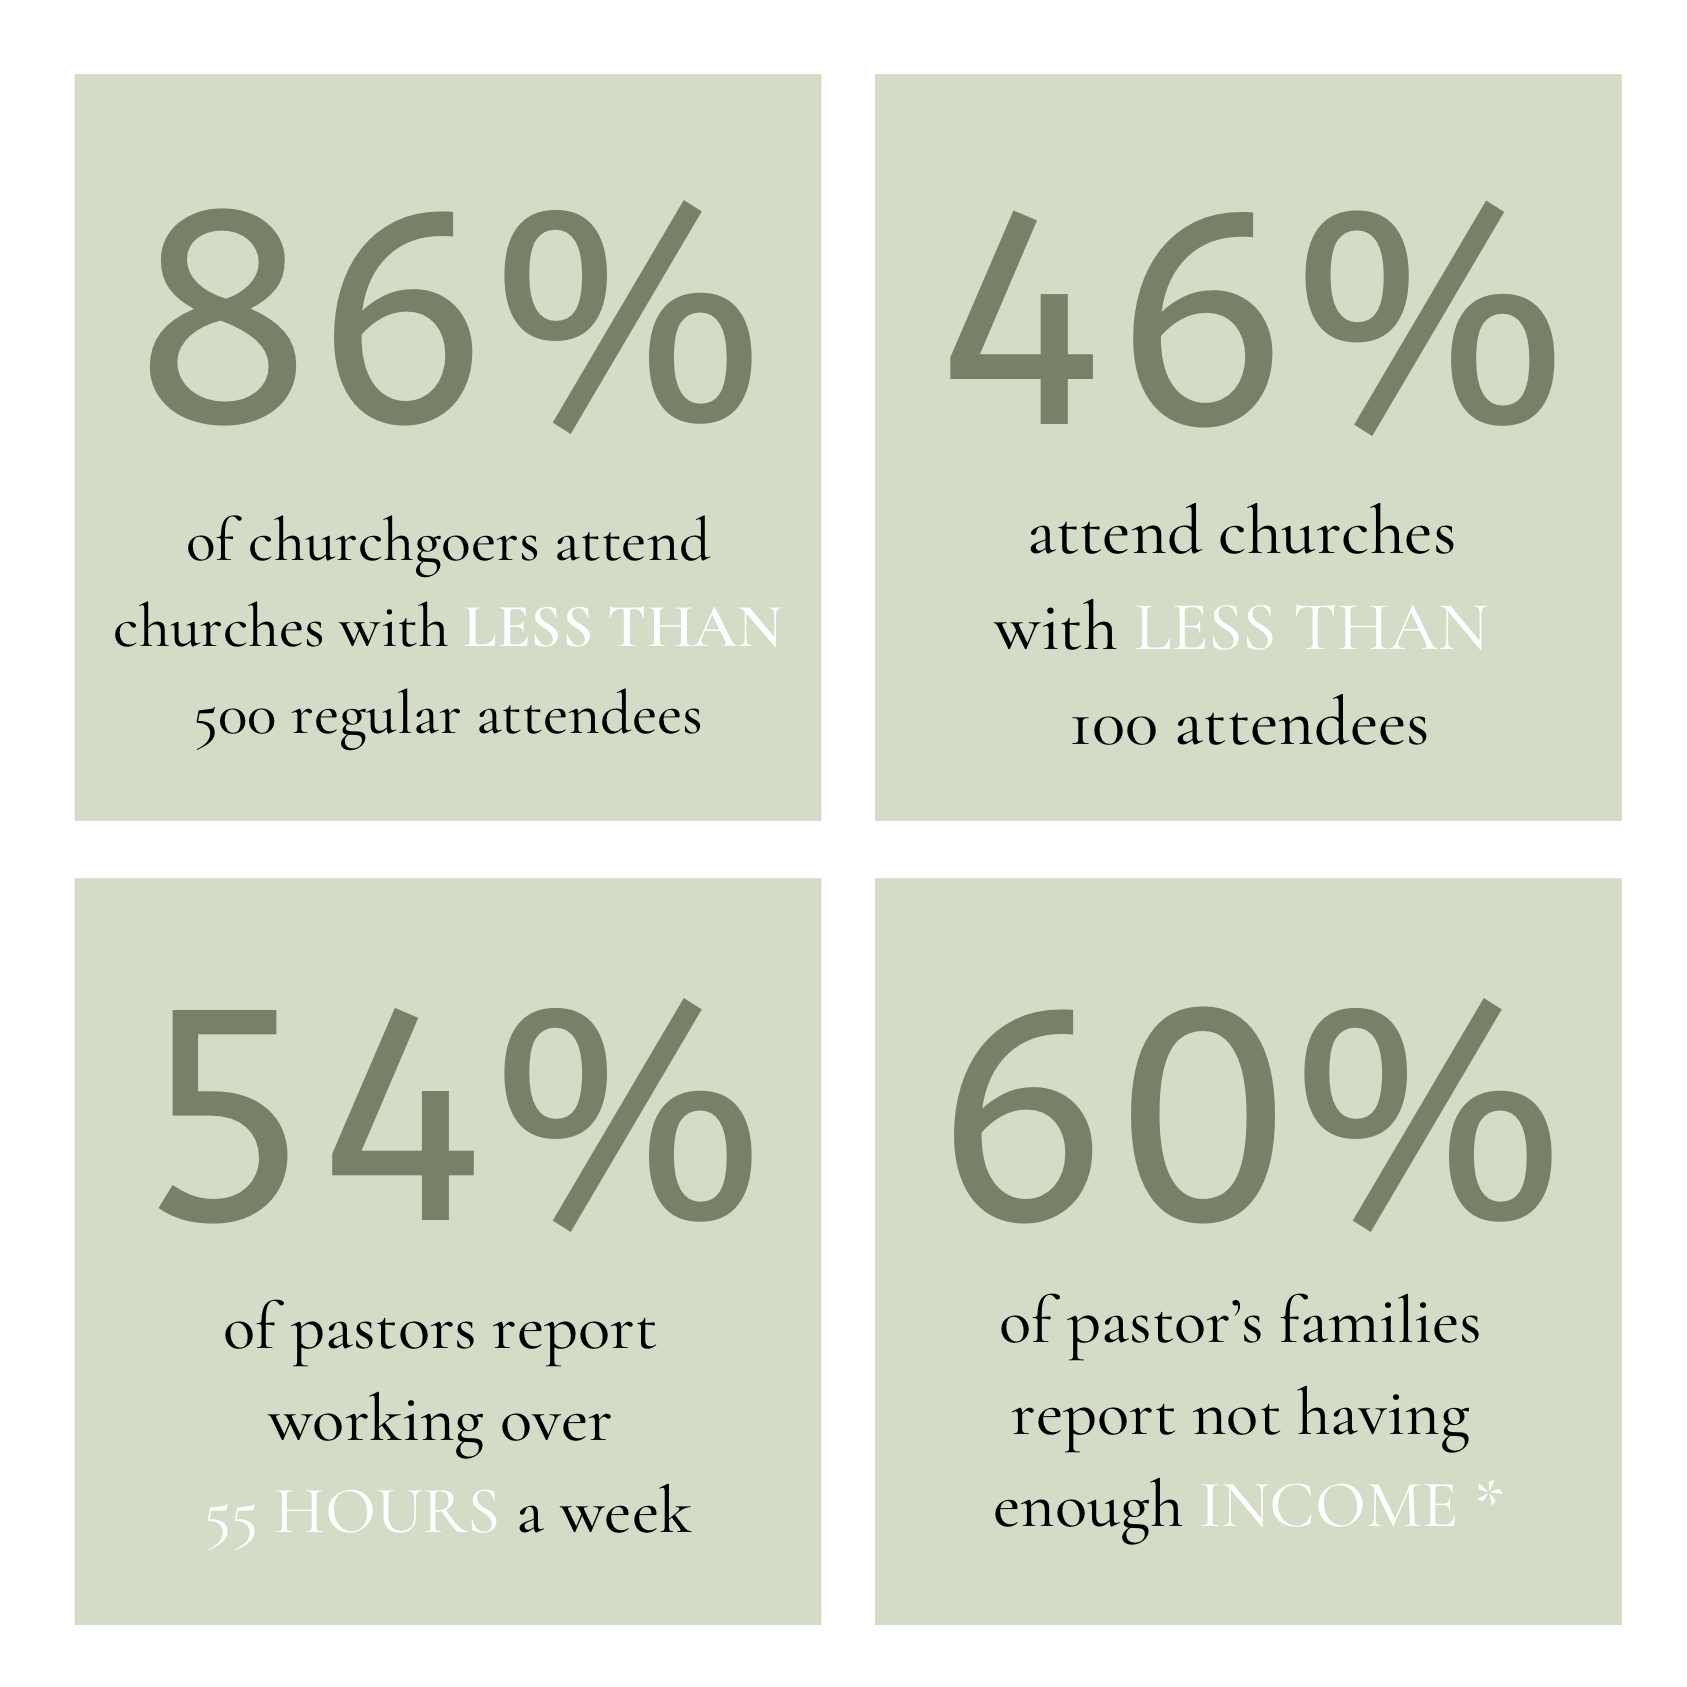 of churchgoers attend churches with LESS THAN 500 regular attendees.png